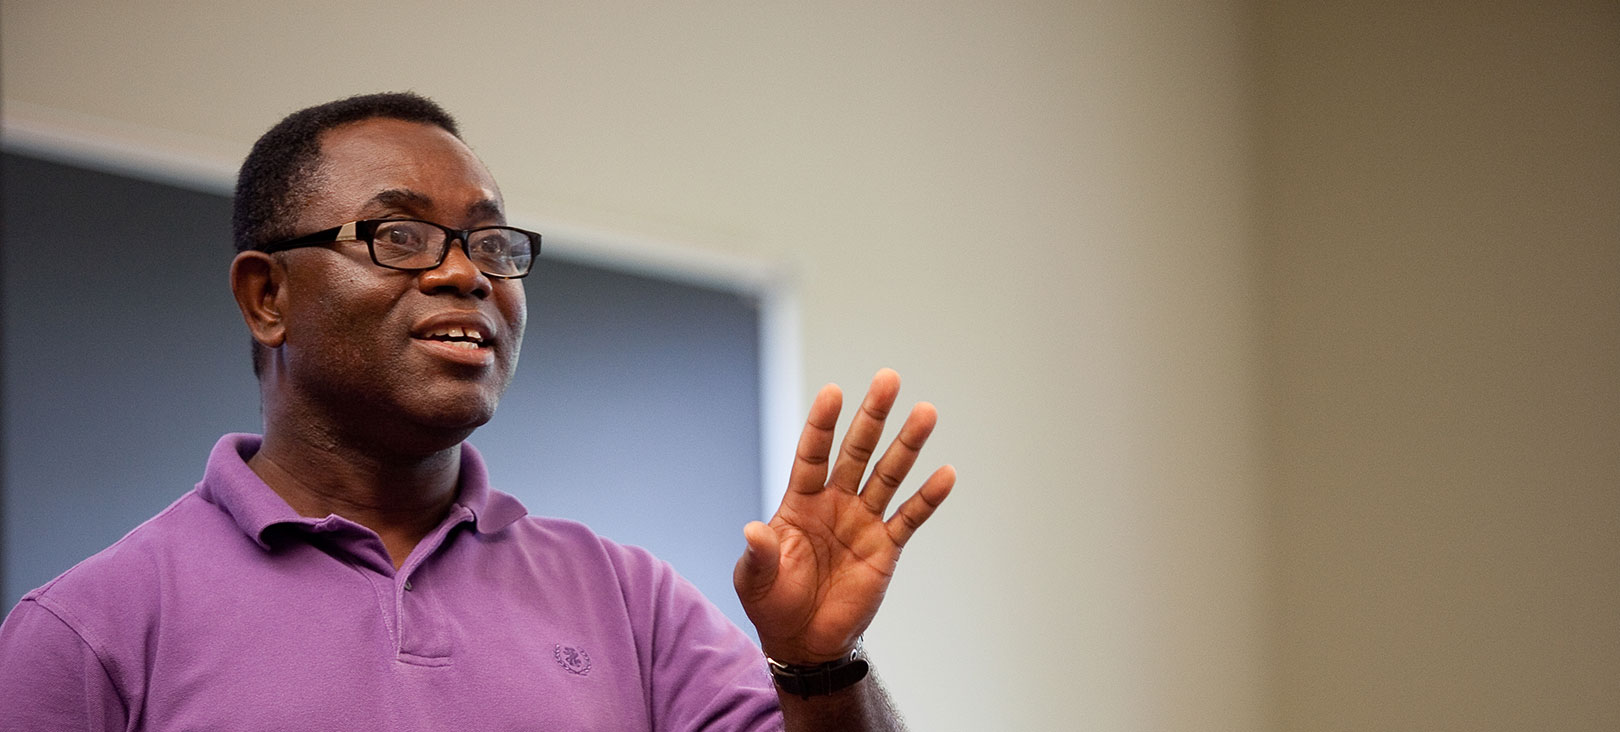 Graduate Programs: Education An african american professor giving a lecture in class.jpg